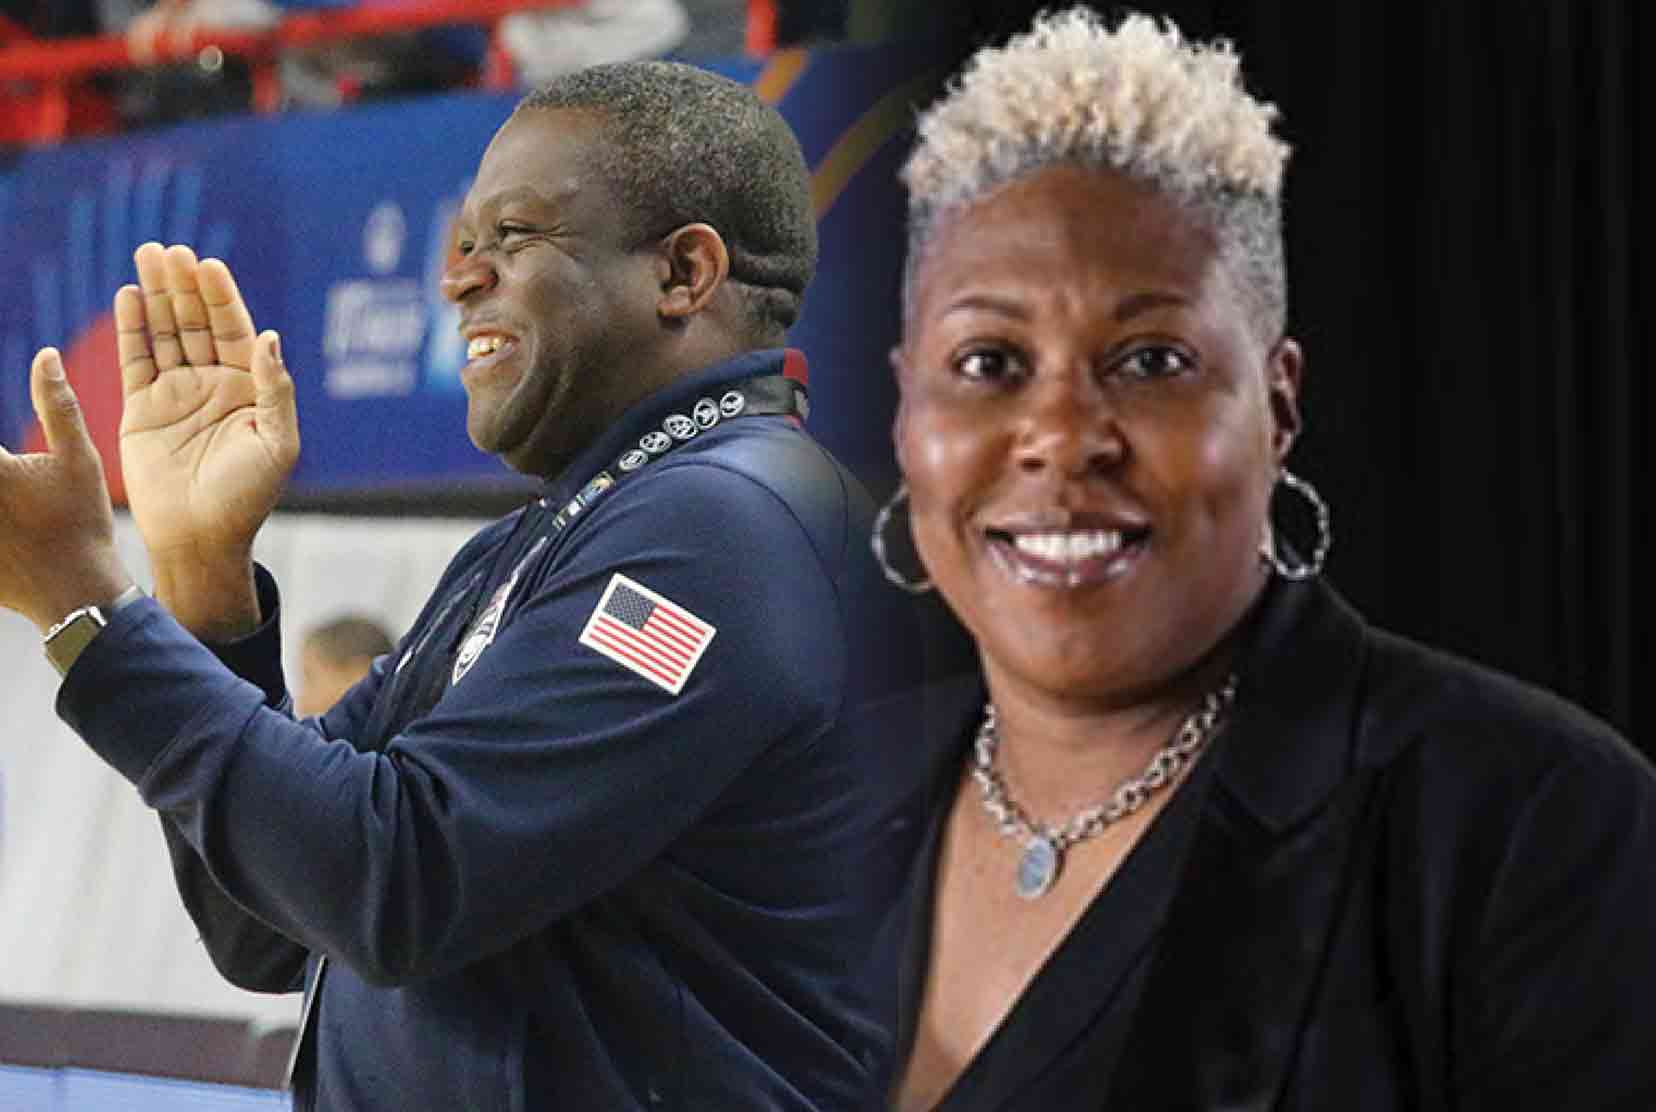 """The University has hired Stan Waterman, former head coach at the Sanford School, and Yconda """"EC"""" Hill, a former WNBA player, as the new head coaches of the Hornet Men and Lady Hornet basketball teams."""